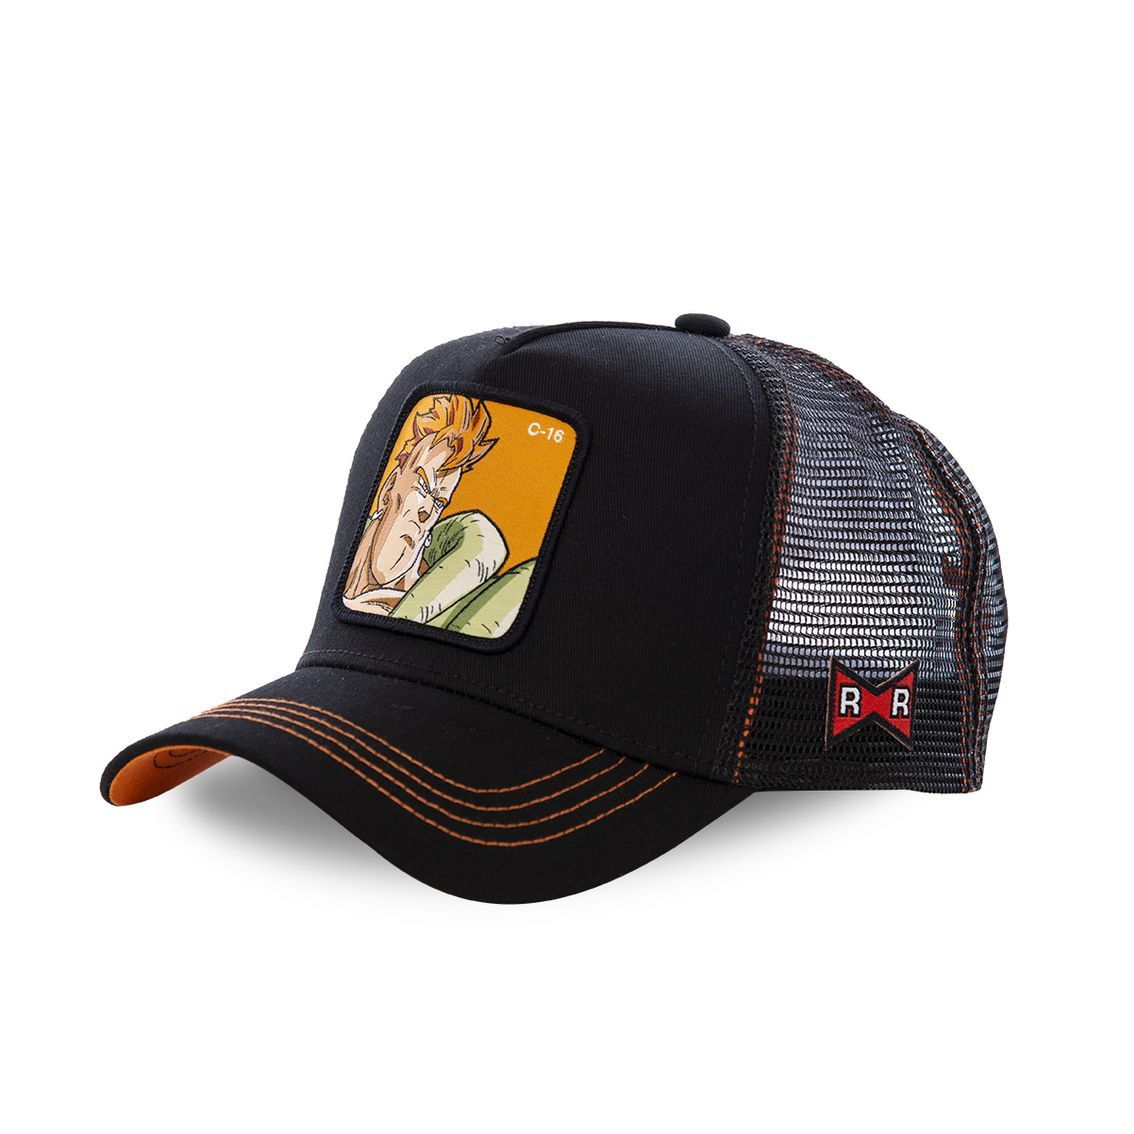 Casquette capslab dragon ball z c-16 noir (photo)